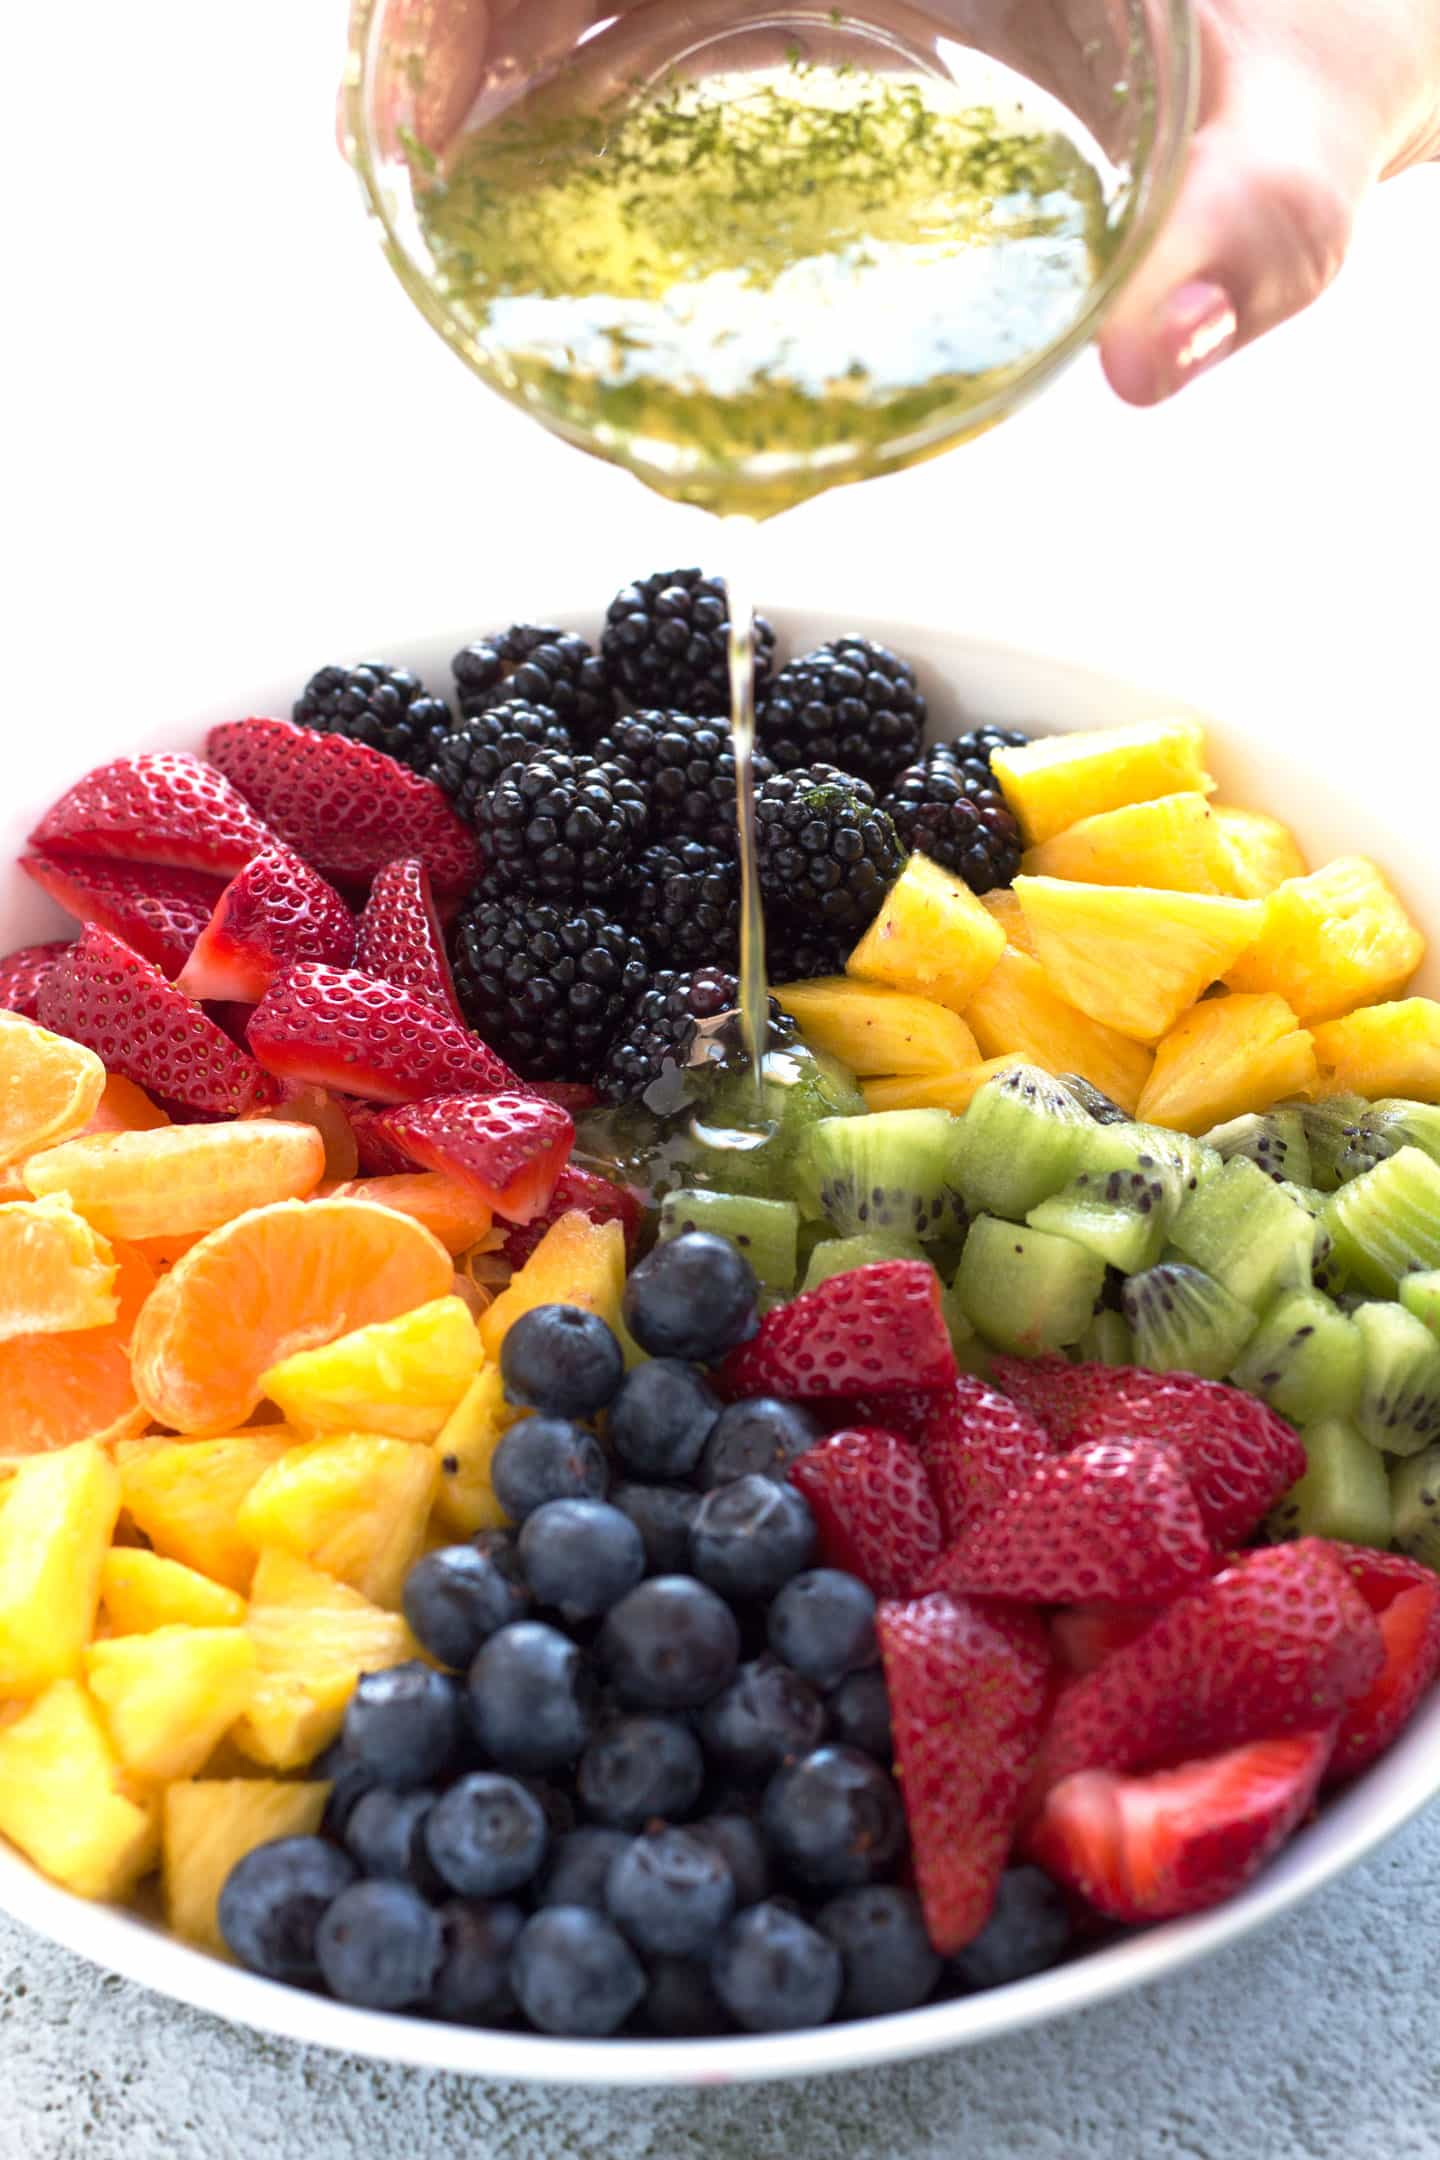 Pouring honey lime dressing on bowl of fruit salad